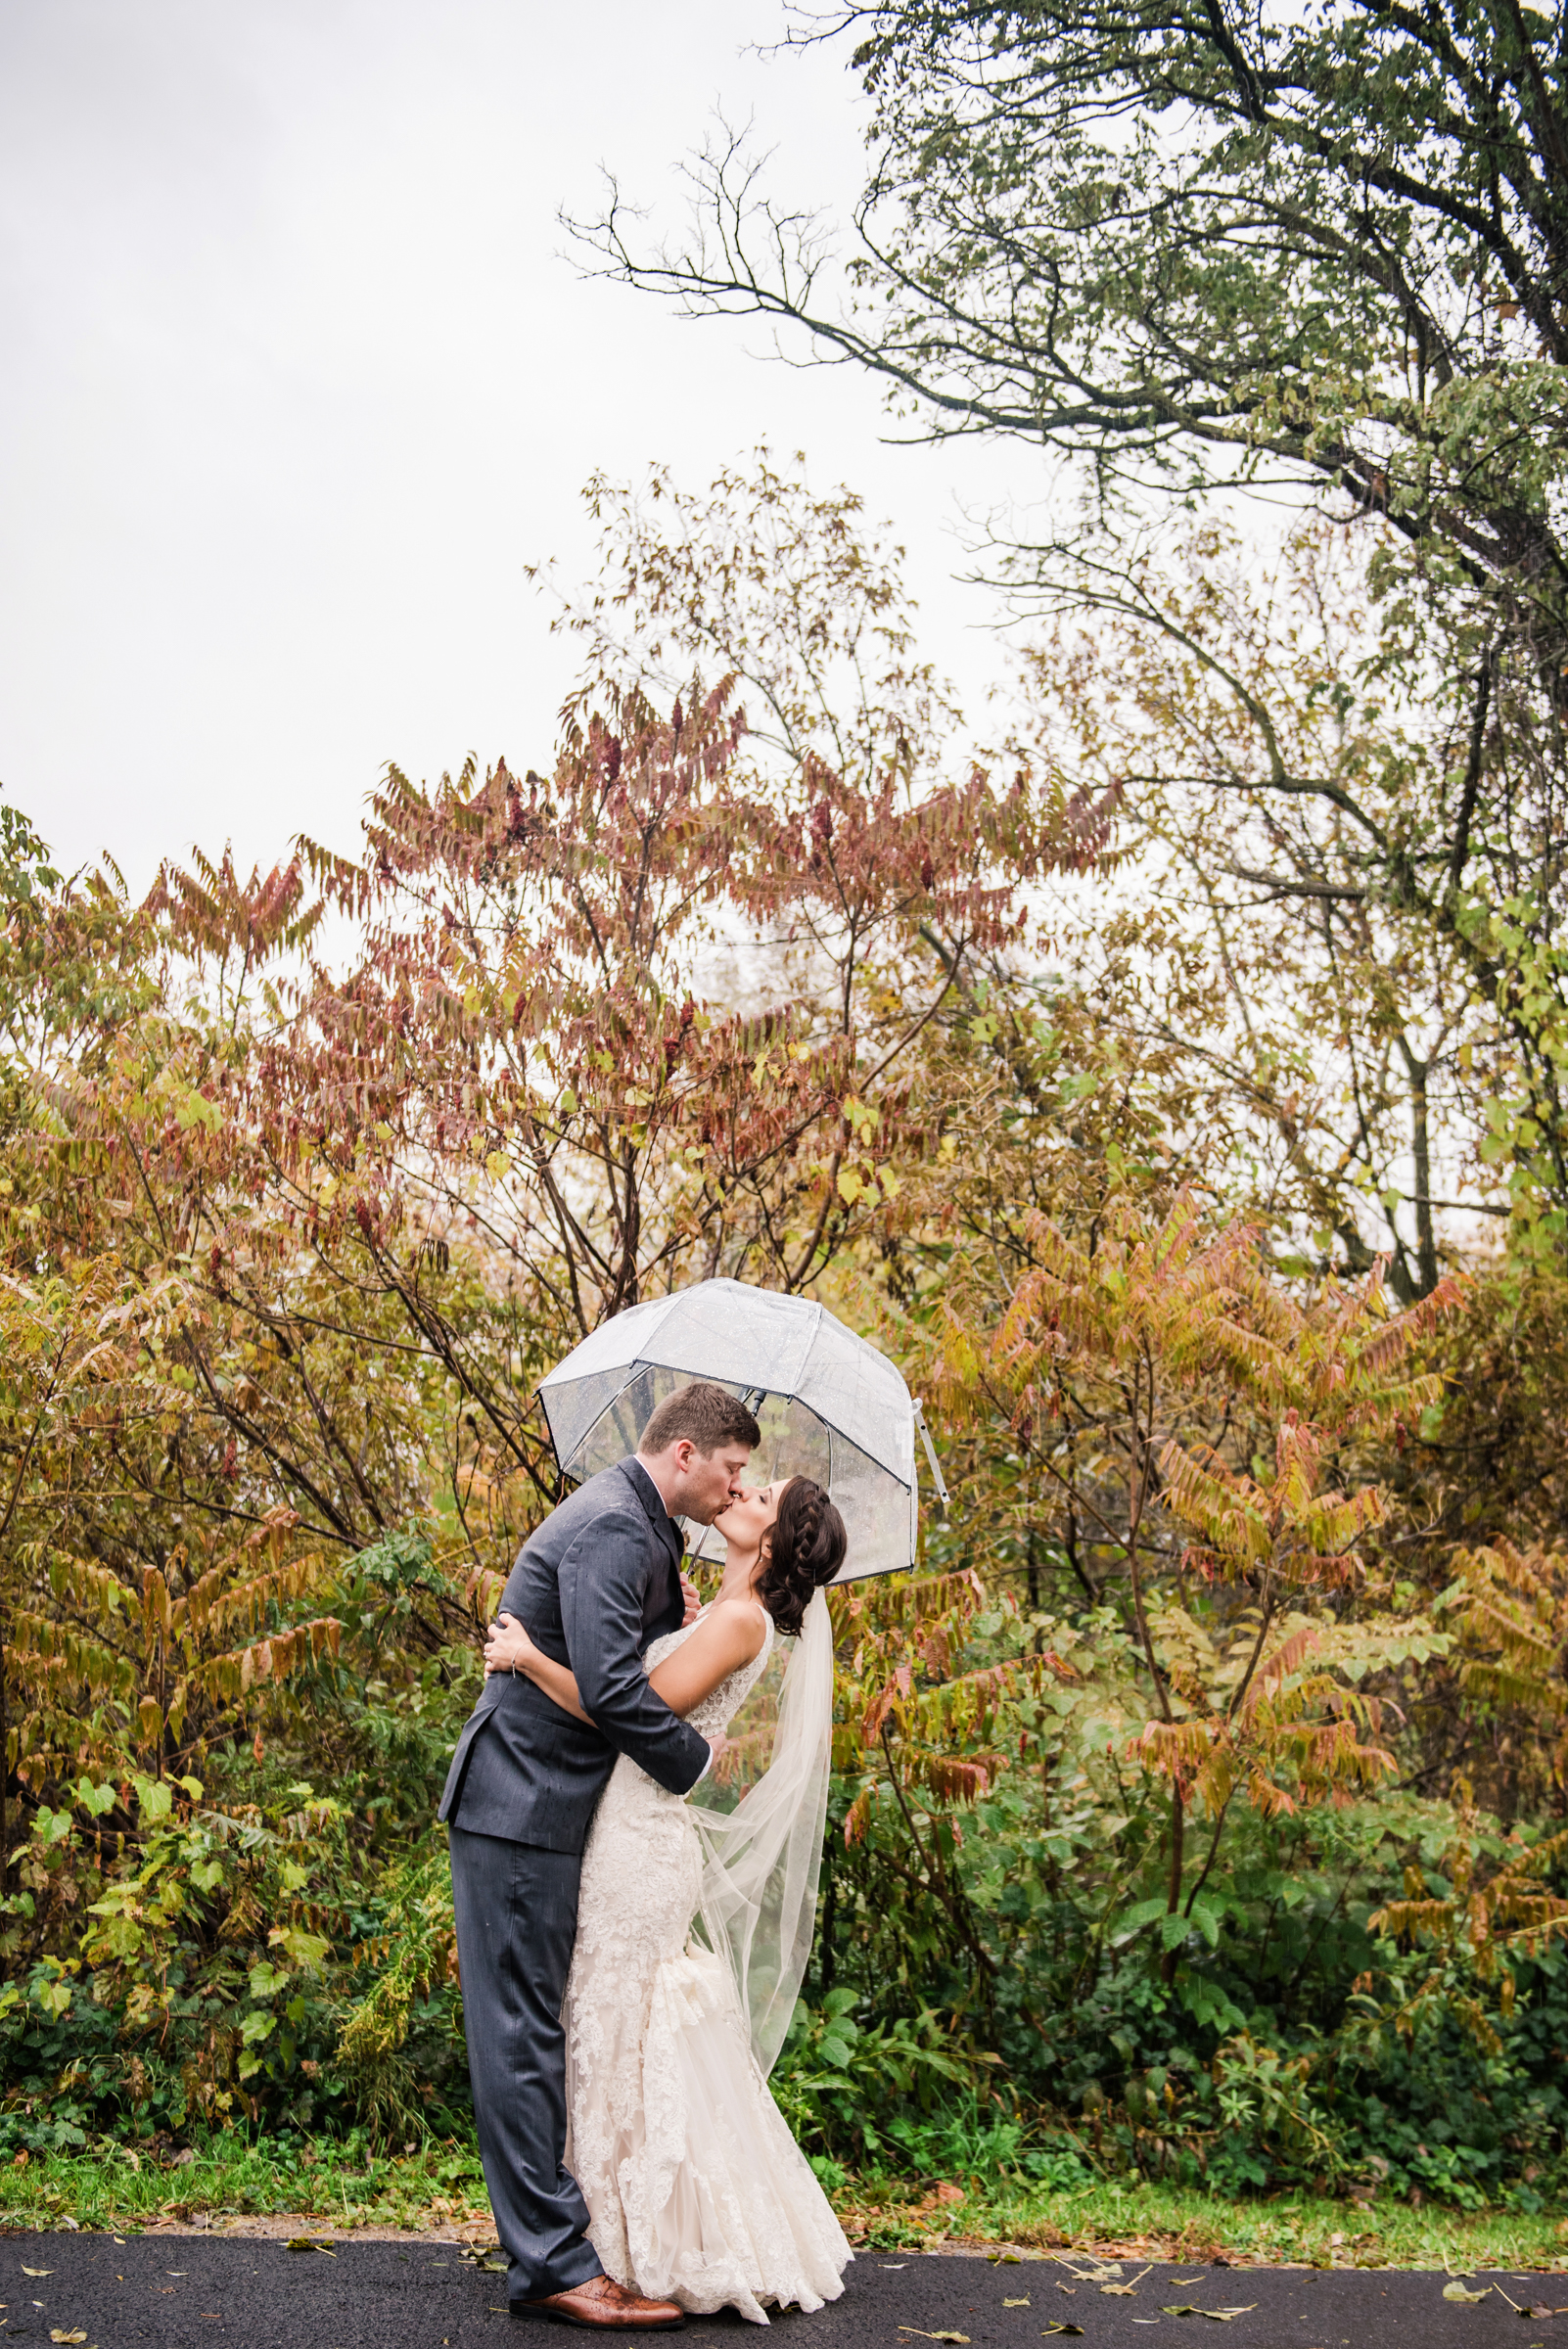 JILL_STUDIO_Wedding_JILL_STUDIO_Rochester_NY_Photographer_30-DSC_7491.jpg